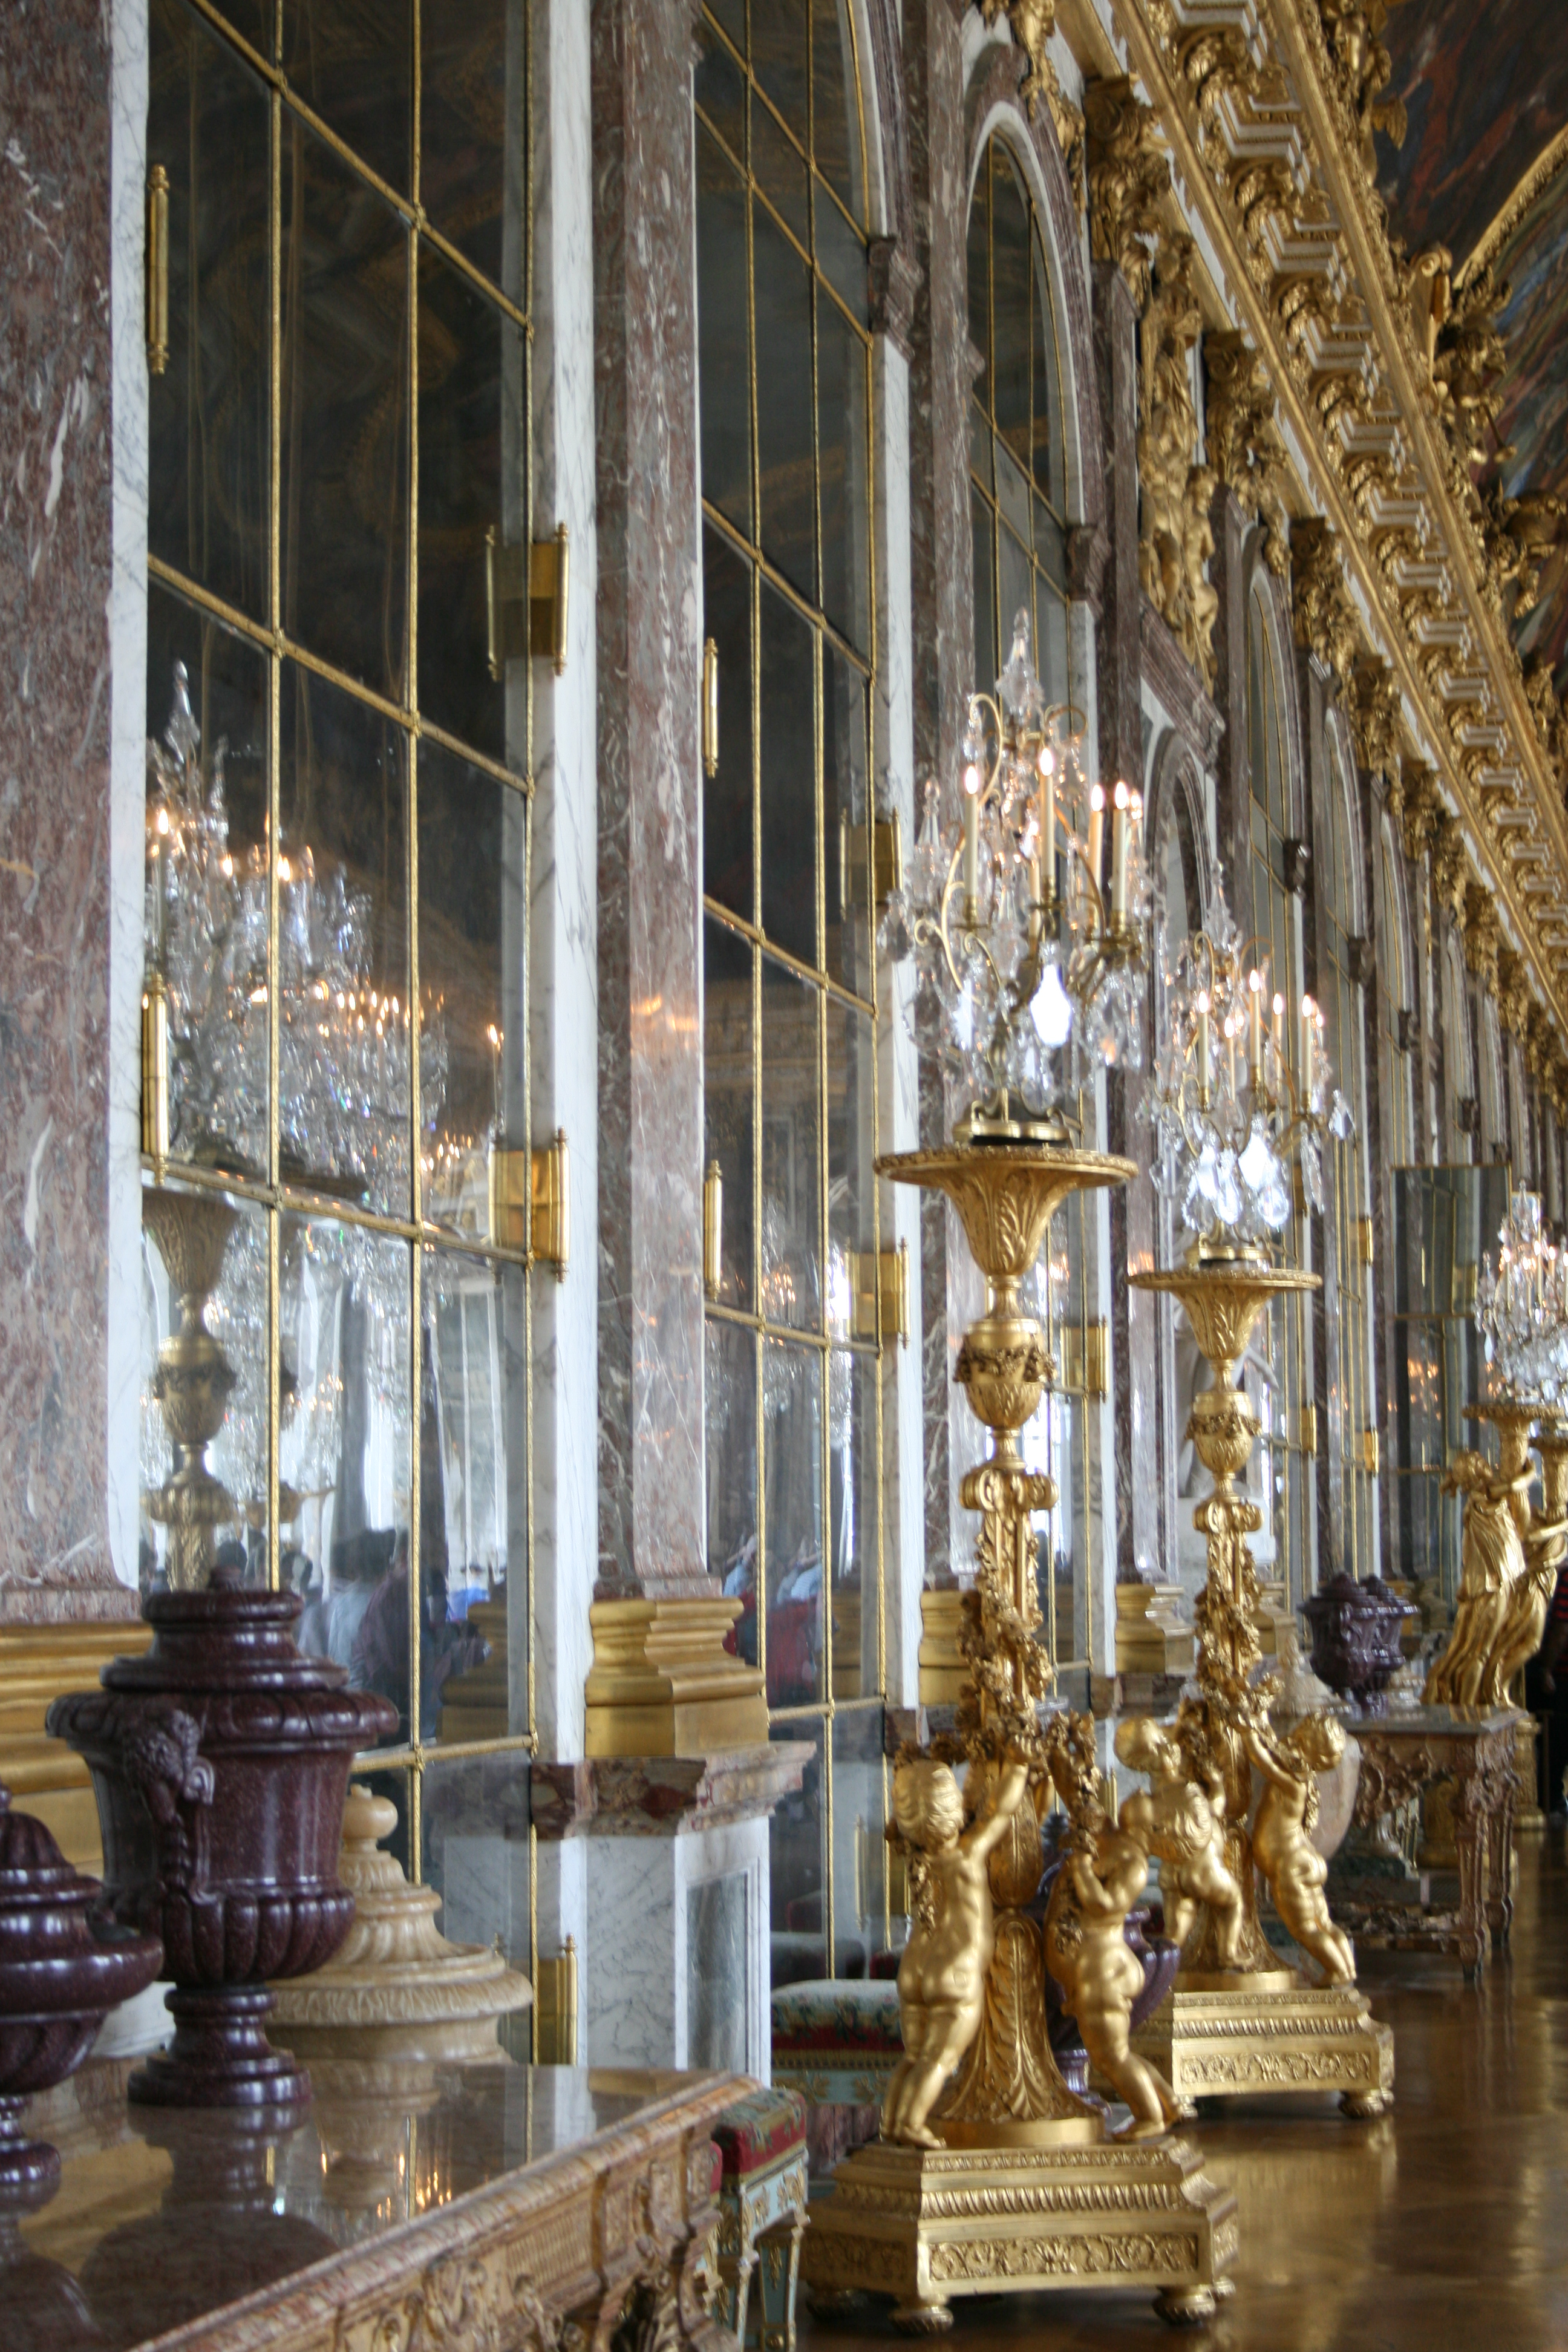 Hall of Mirrors, details